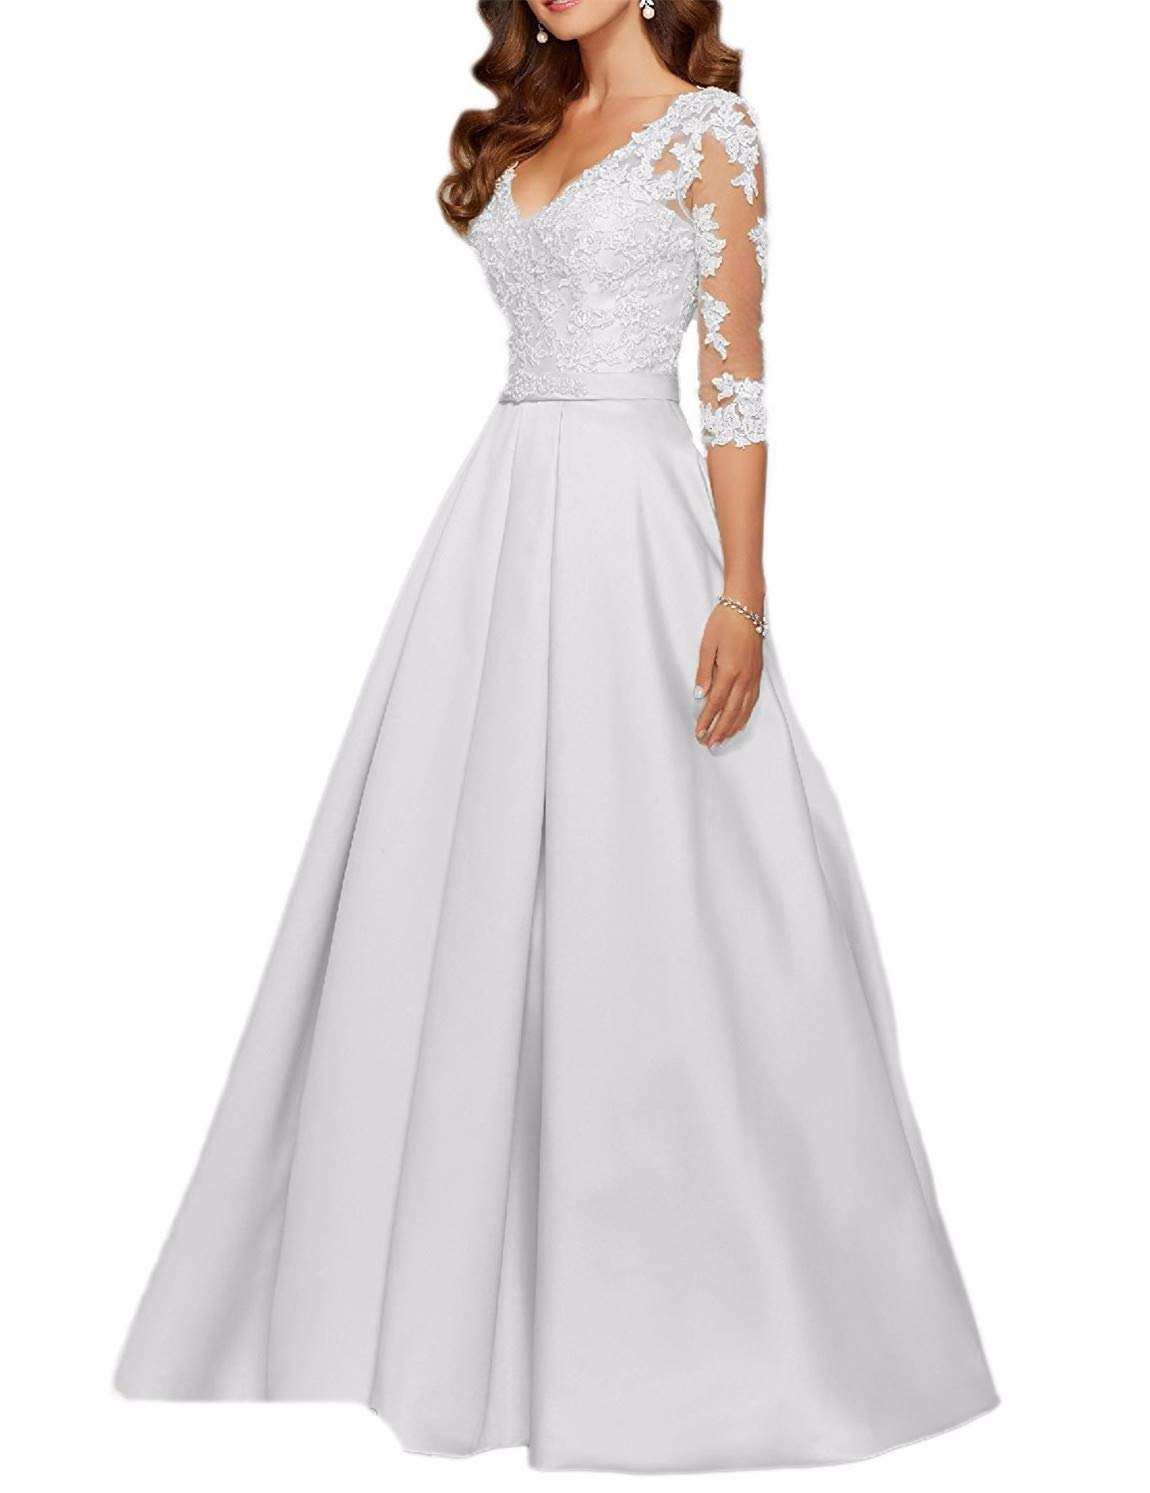 d4e2aa4019a Scarisee Women s 3 4 Long Sleeves V-Neck Beaded Evening Prom Party Dresses  Lace Appliqued Mother of The Bride Gowns Formal White 16